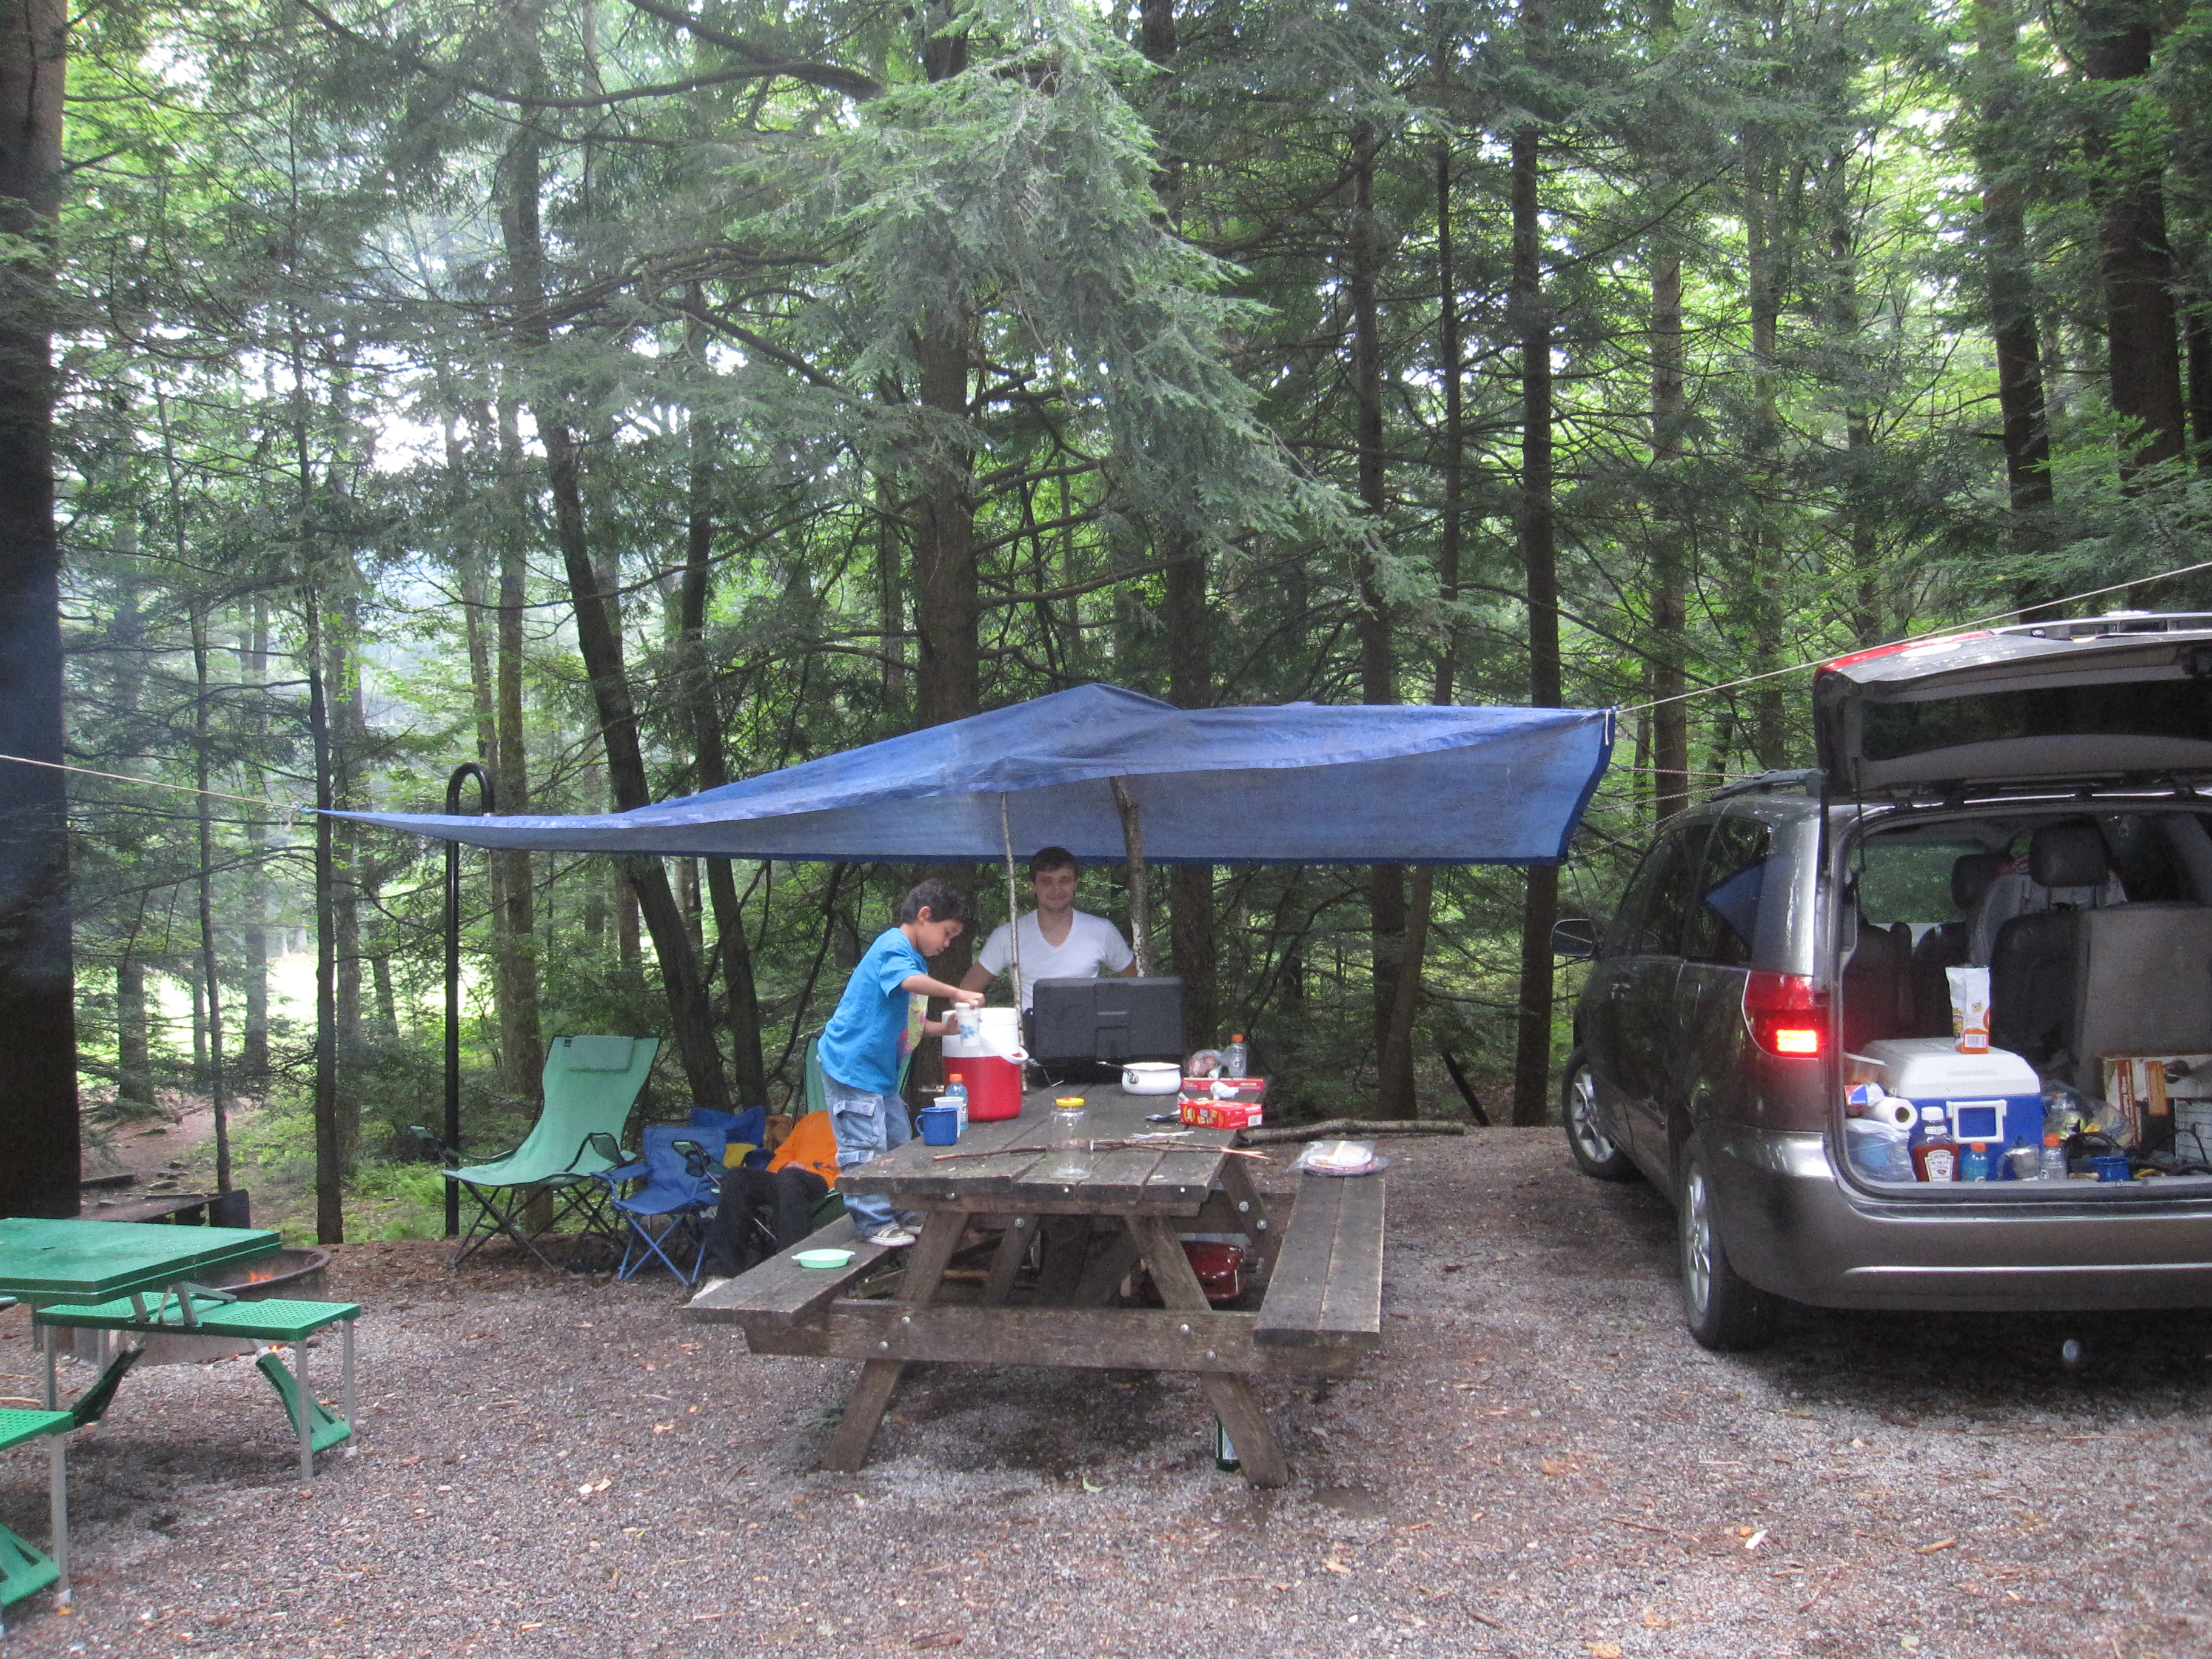 Family Camping In The Woods After Downpour We Went On A Hike Campsite